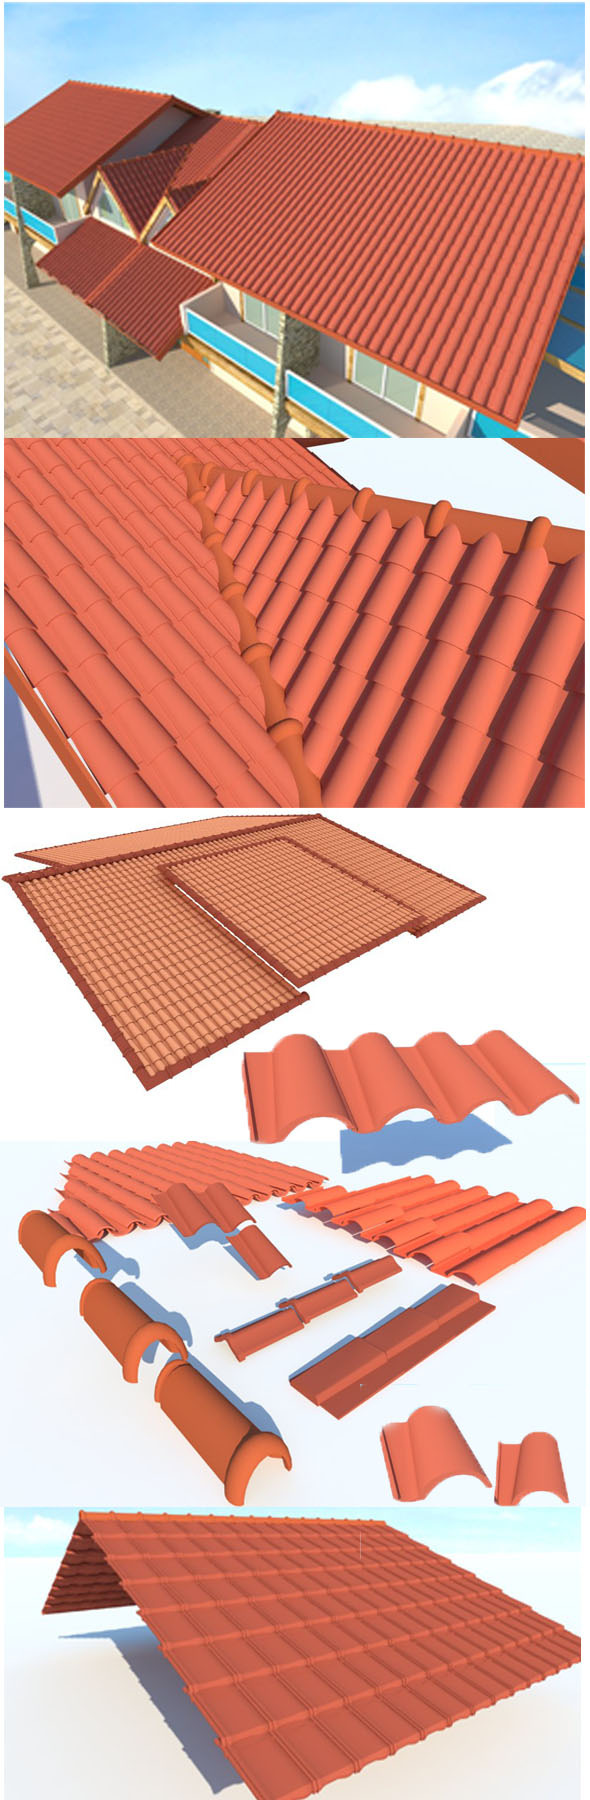 Shingle roof elements - 3DOcean Item for Sale